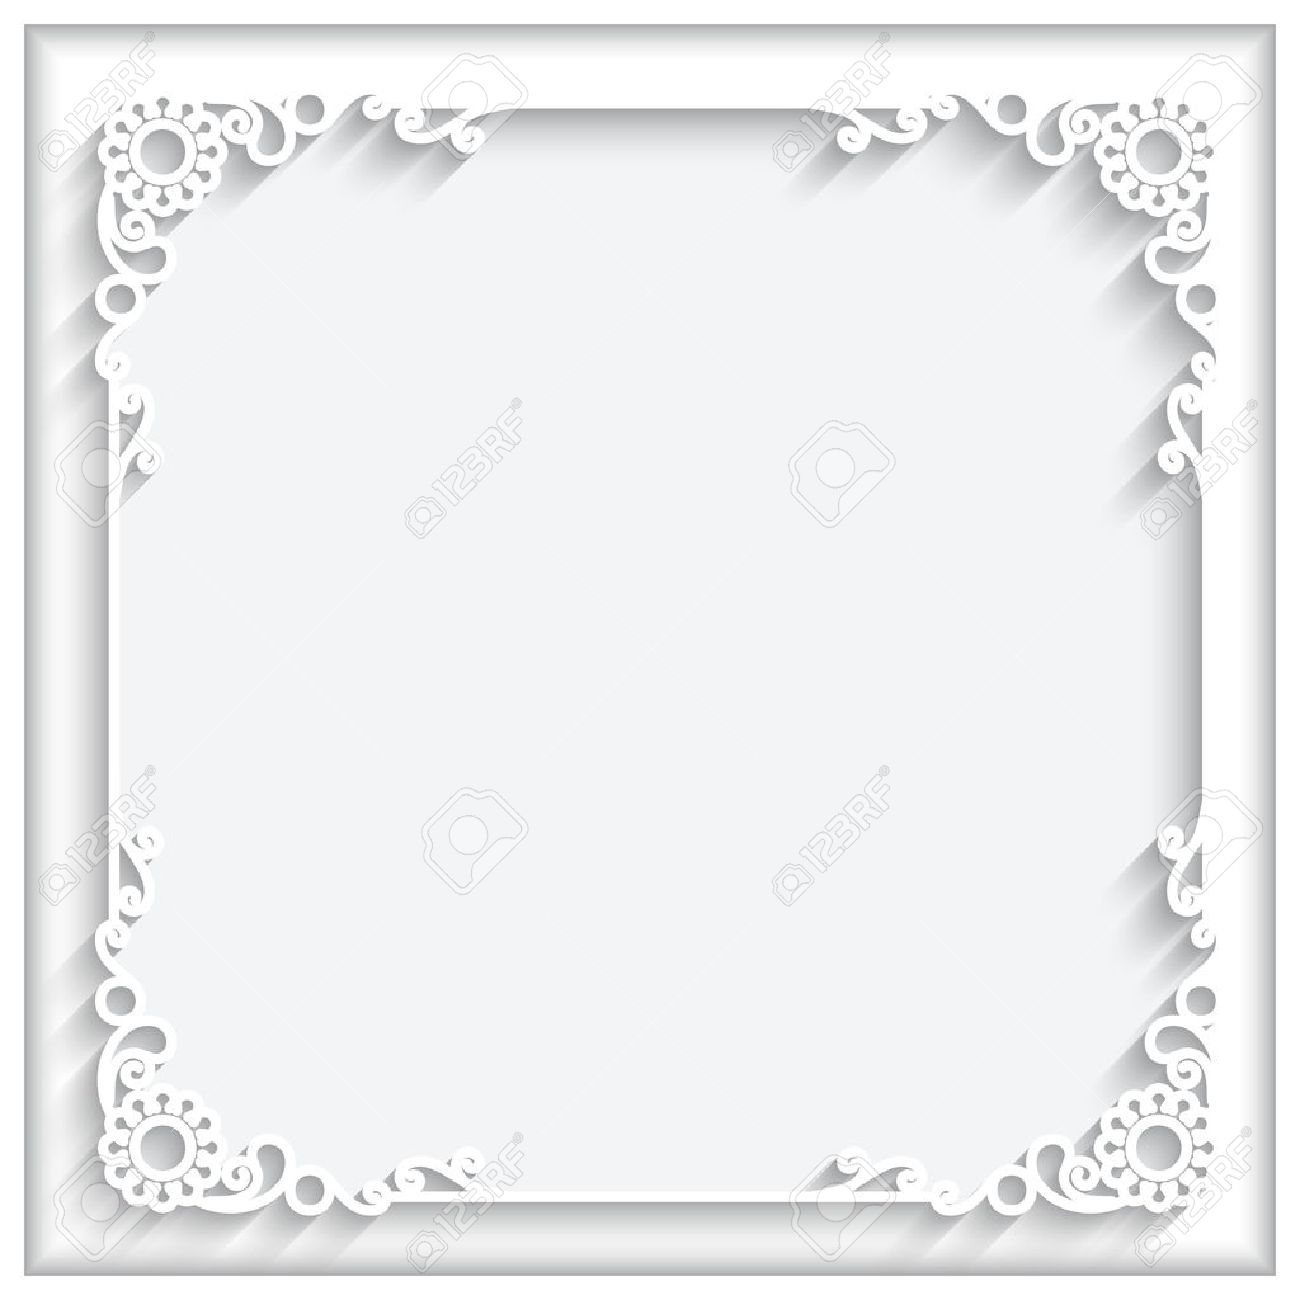 Abstract square lace frame with paper swirls, ornamental corners, white decorative background - 43130287